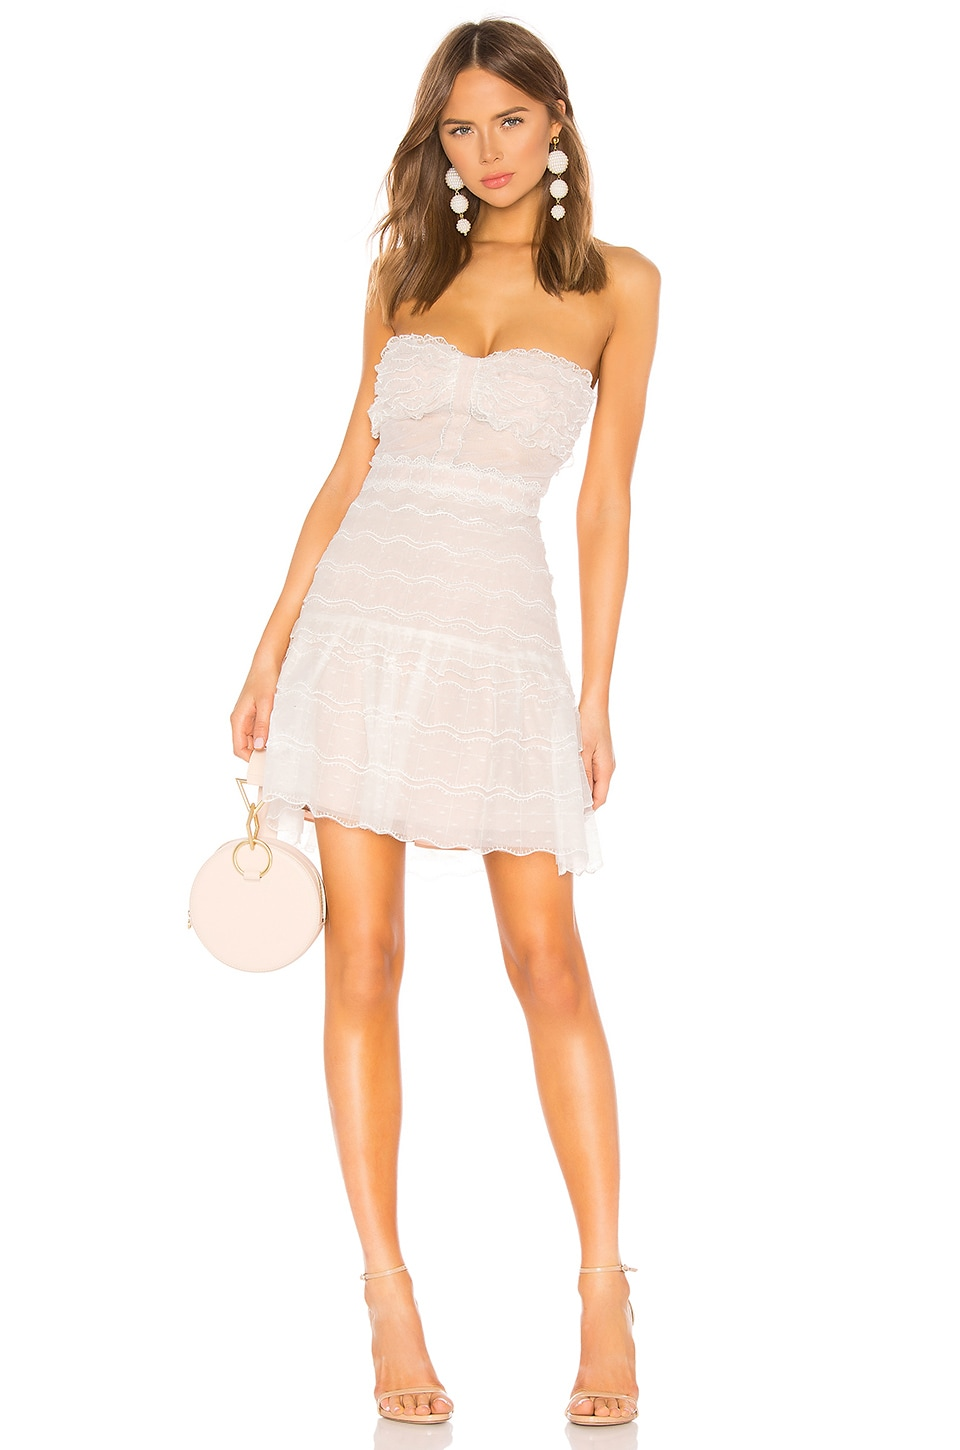 Alexis Adlai Dress in White